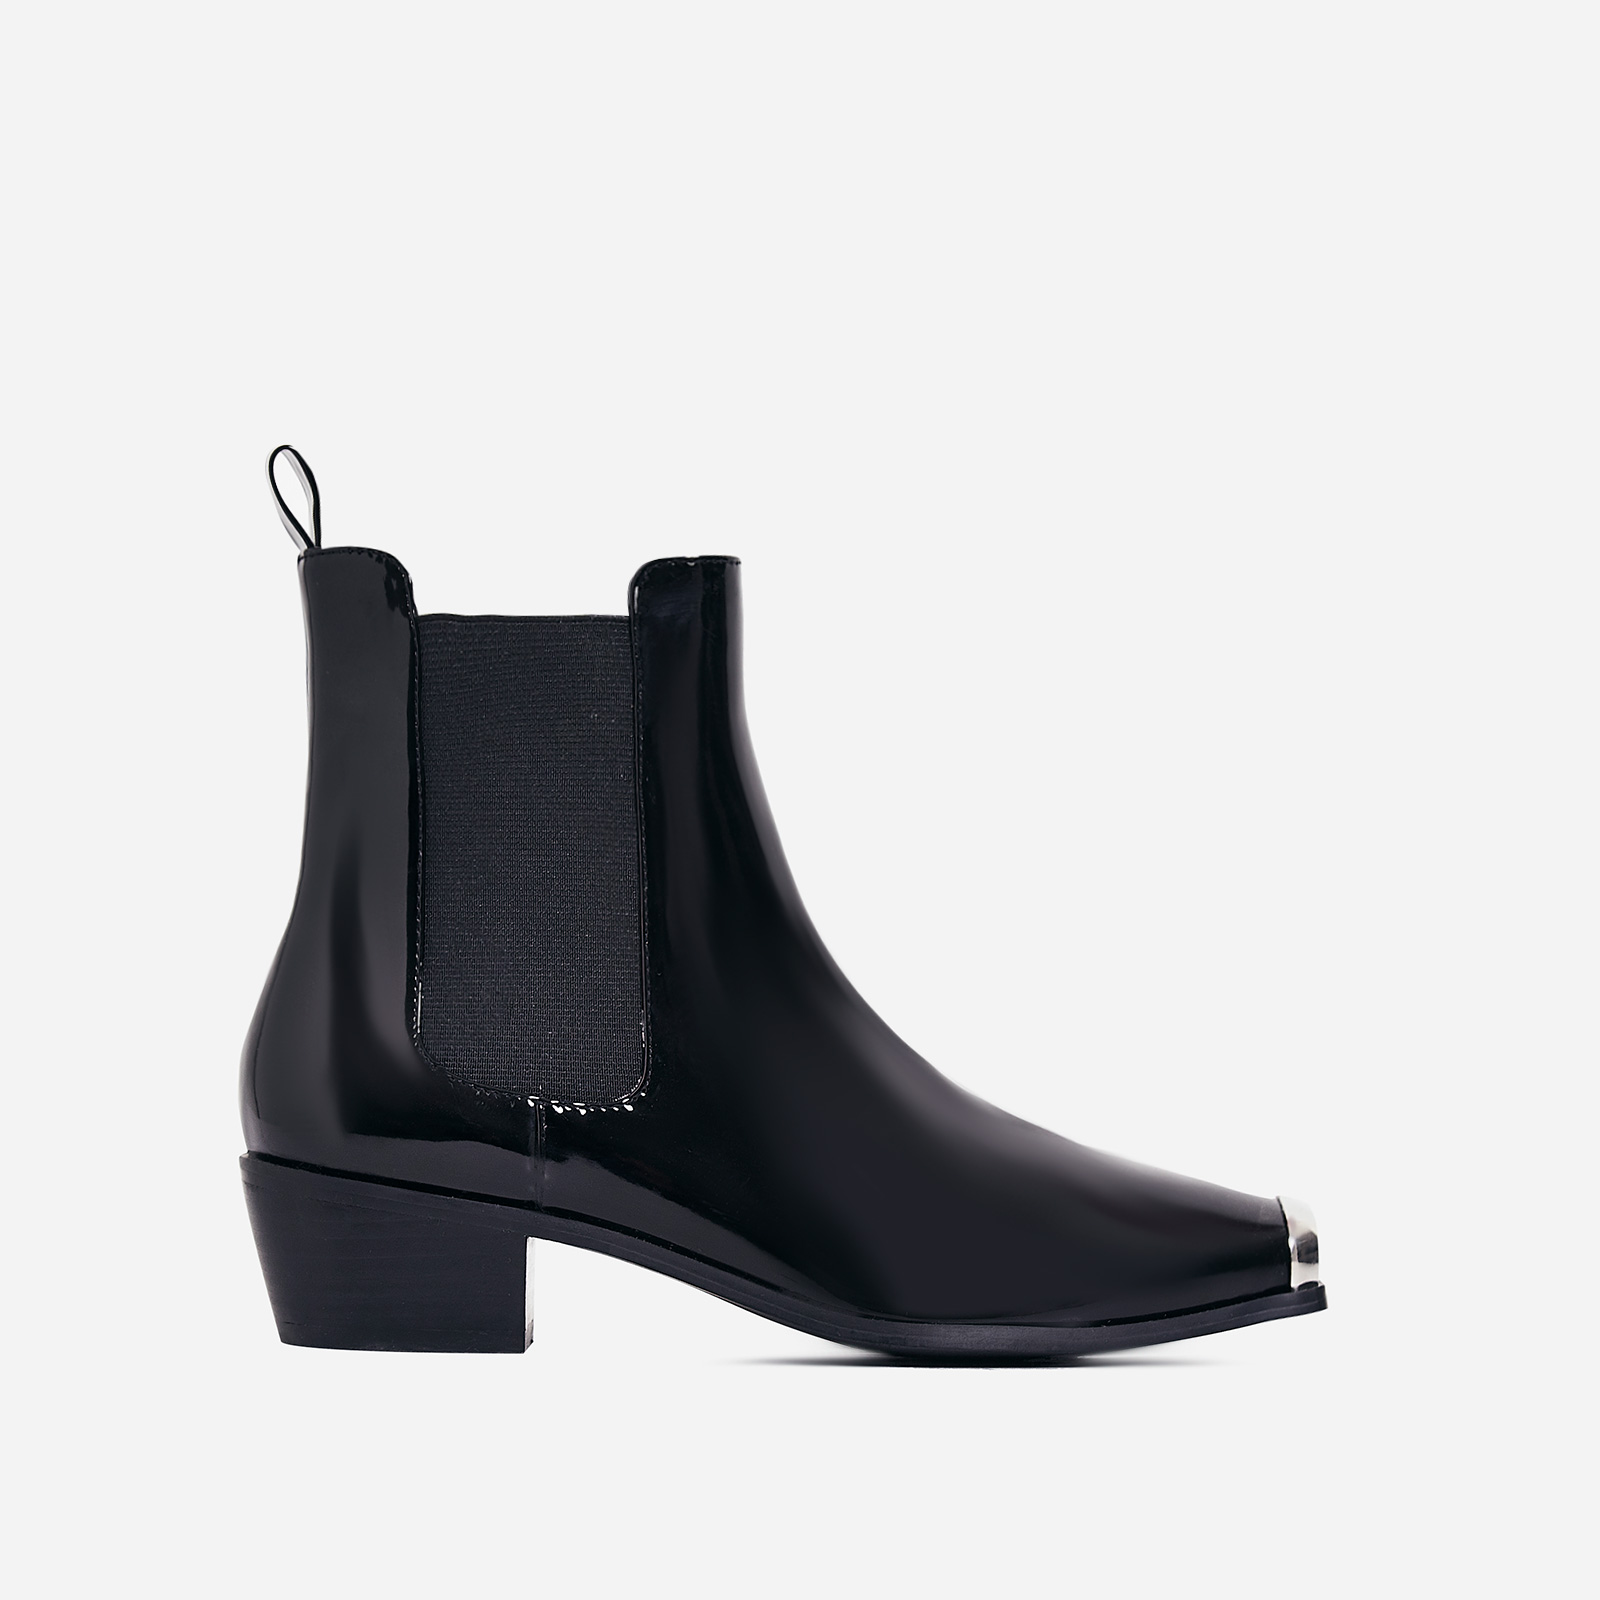 Hauser Toe Cap Western Ankle Boot In Black Patent